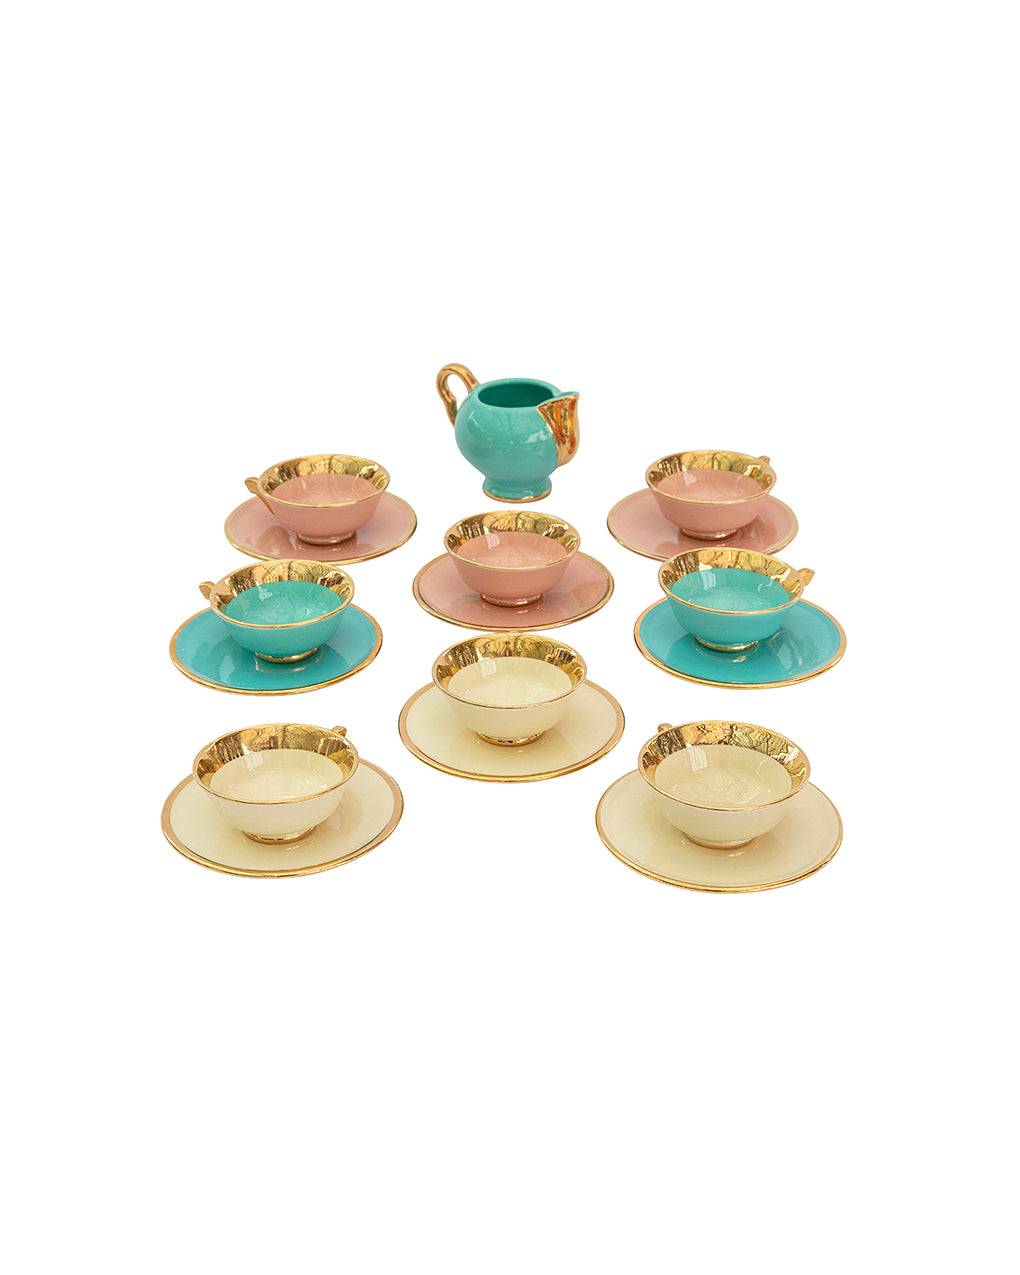 Set de porcelana con borde dorado